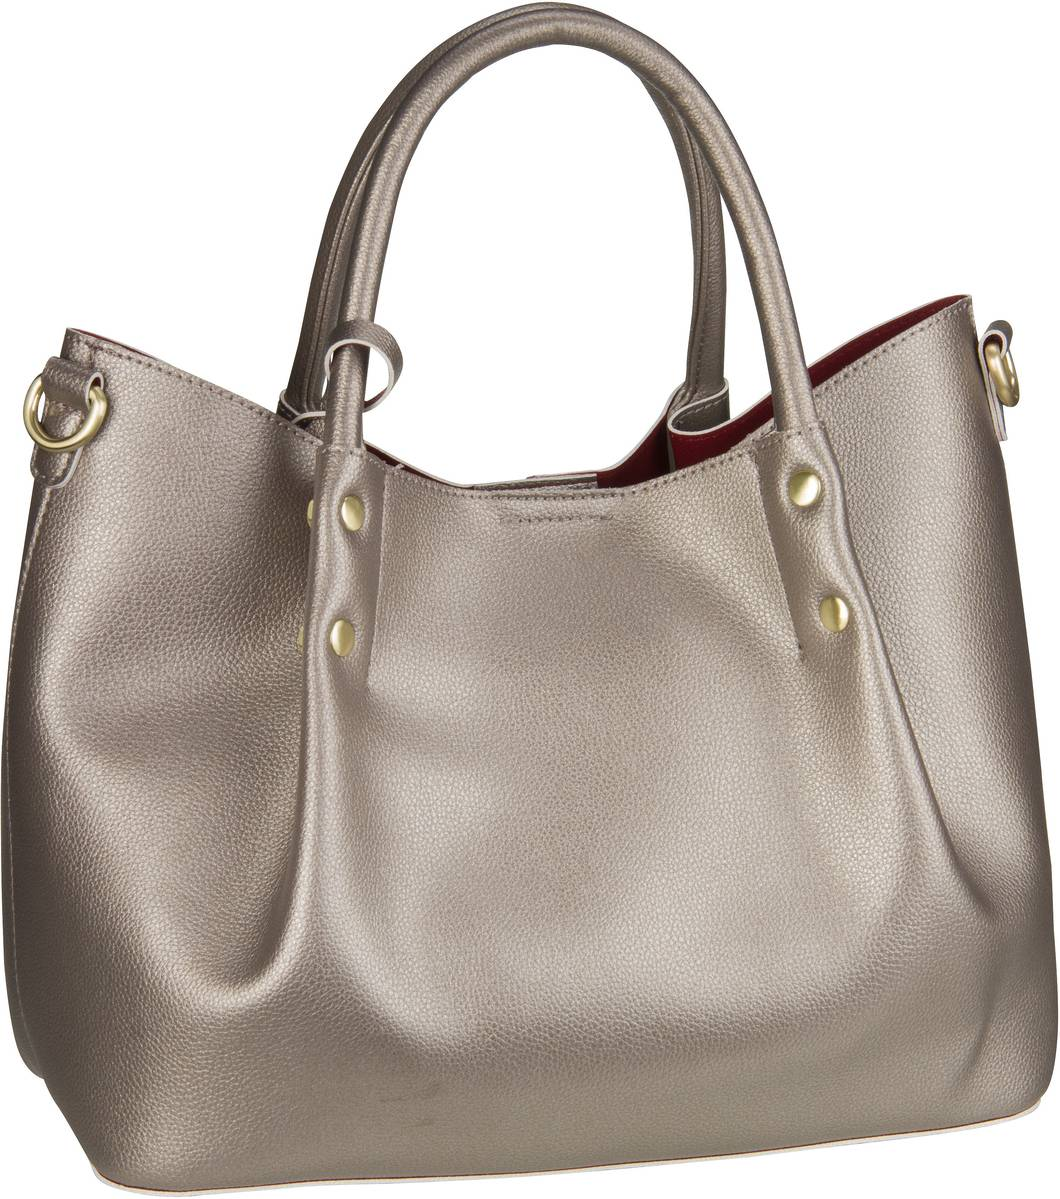 House of Envy Fabulous Shopper Copper - Handtasche